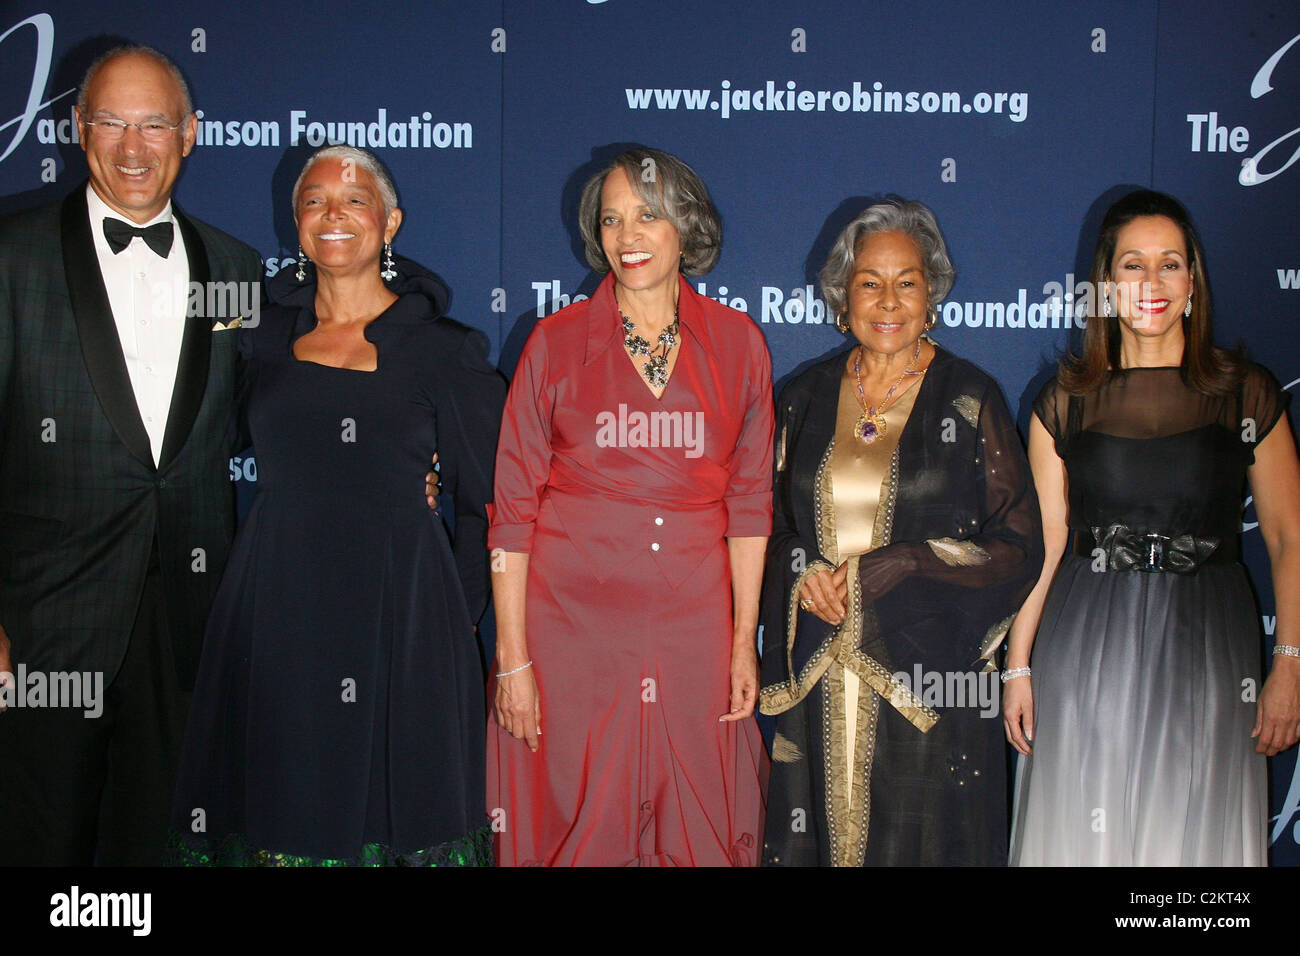 Leonard s coleman dr camille cosby dr johnnetta b cole ra